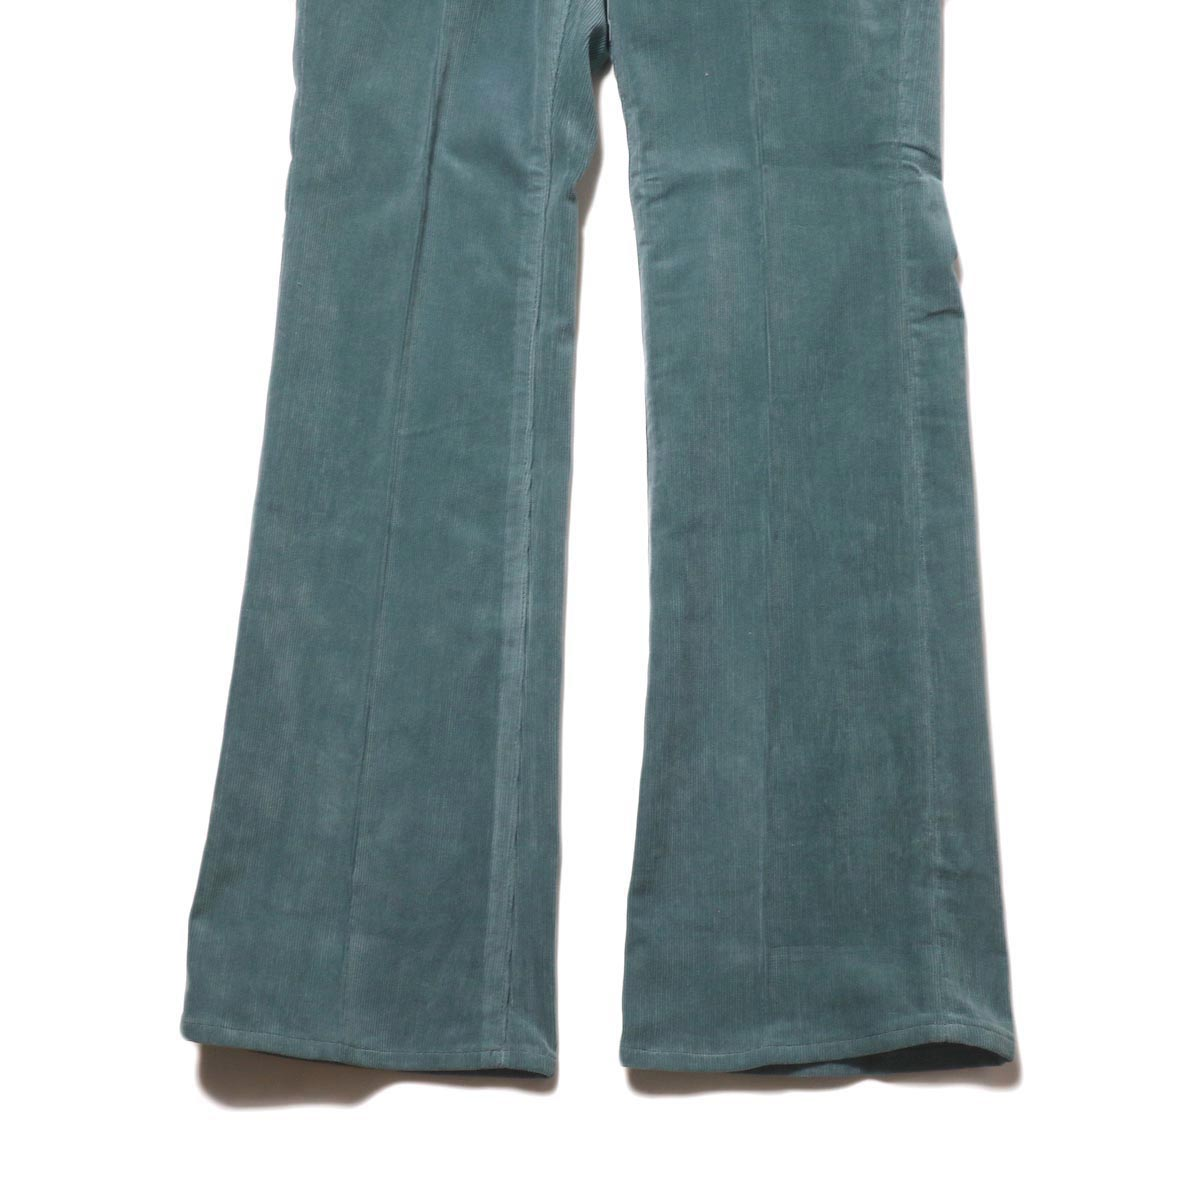 JANE SMITH / 5POCKET BOOTSCUT (jade green) 裾